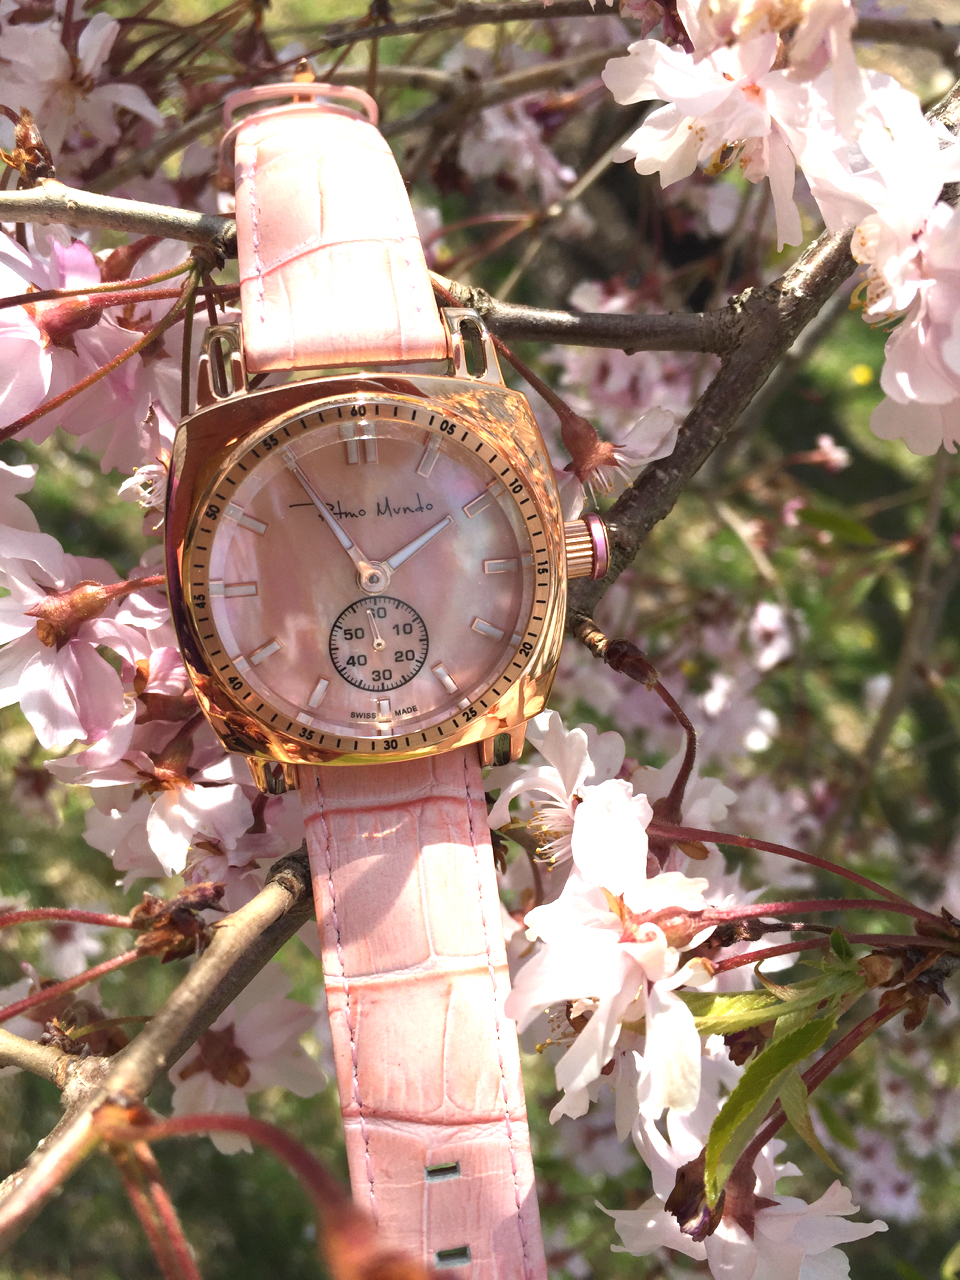 Ritmo Mundo Ladies Racer watch in IP rose gold with pink mother-of-pearl dial and pink leather strap. (Photo: R. Naas,ATimelyPerspective)